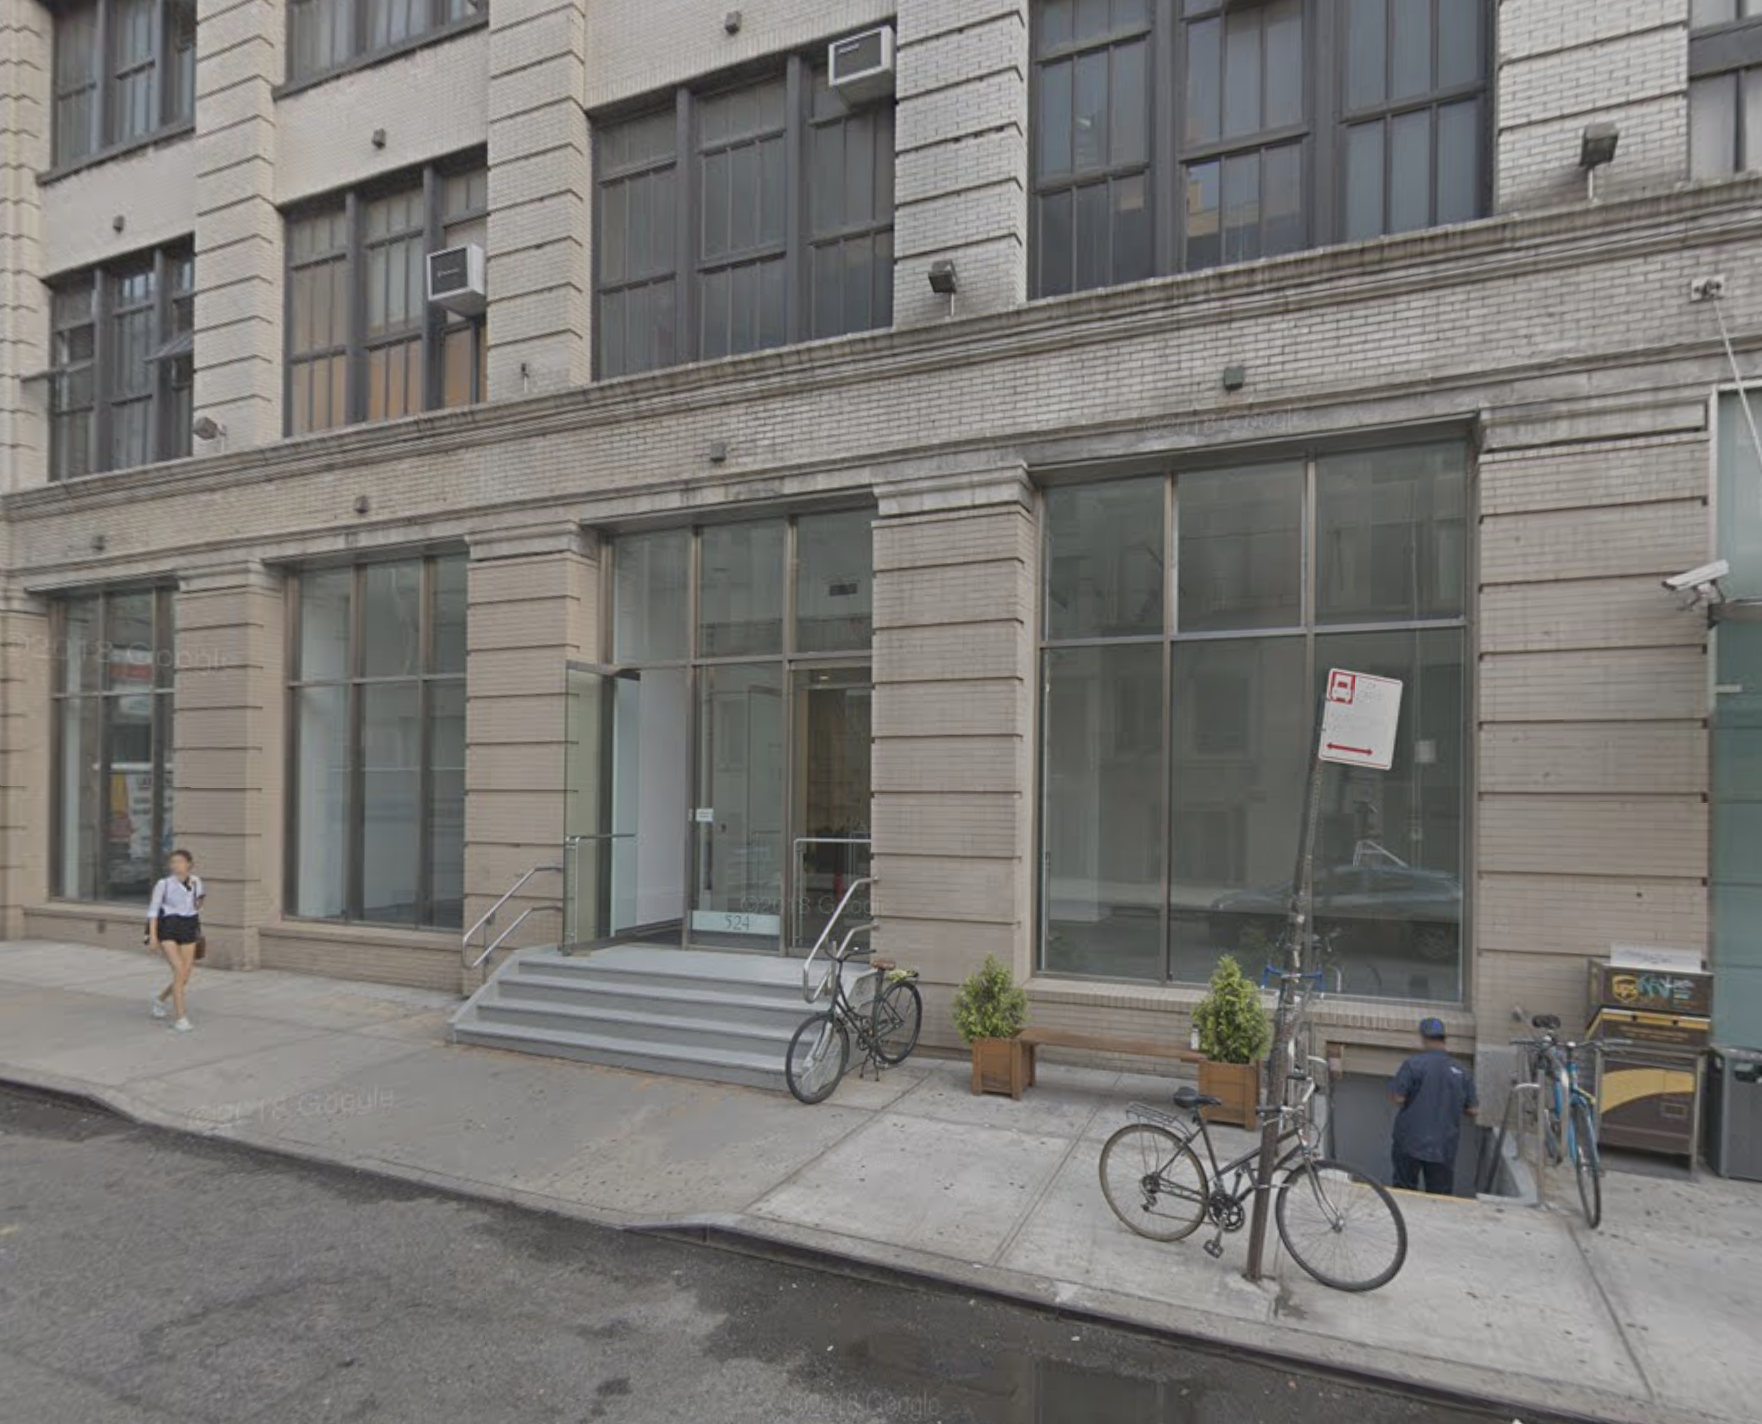 Paula Cooper Gallery to Temporarily Relocate Headquarters to West 26th Street -ARTnews